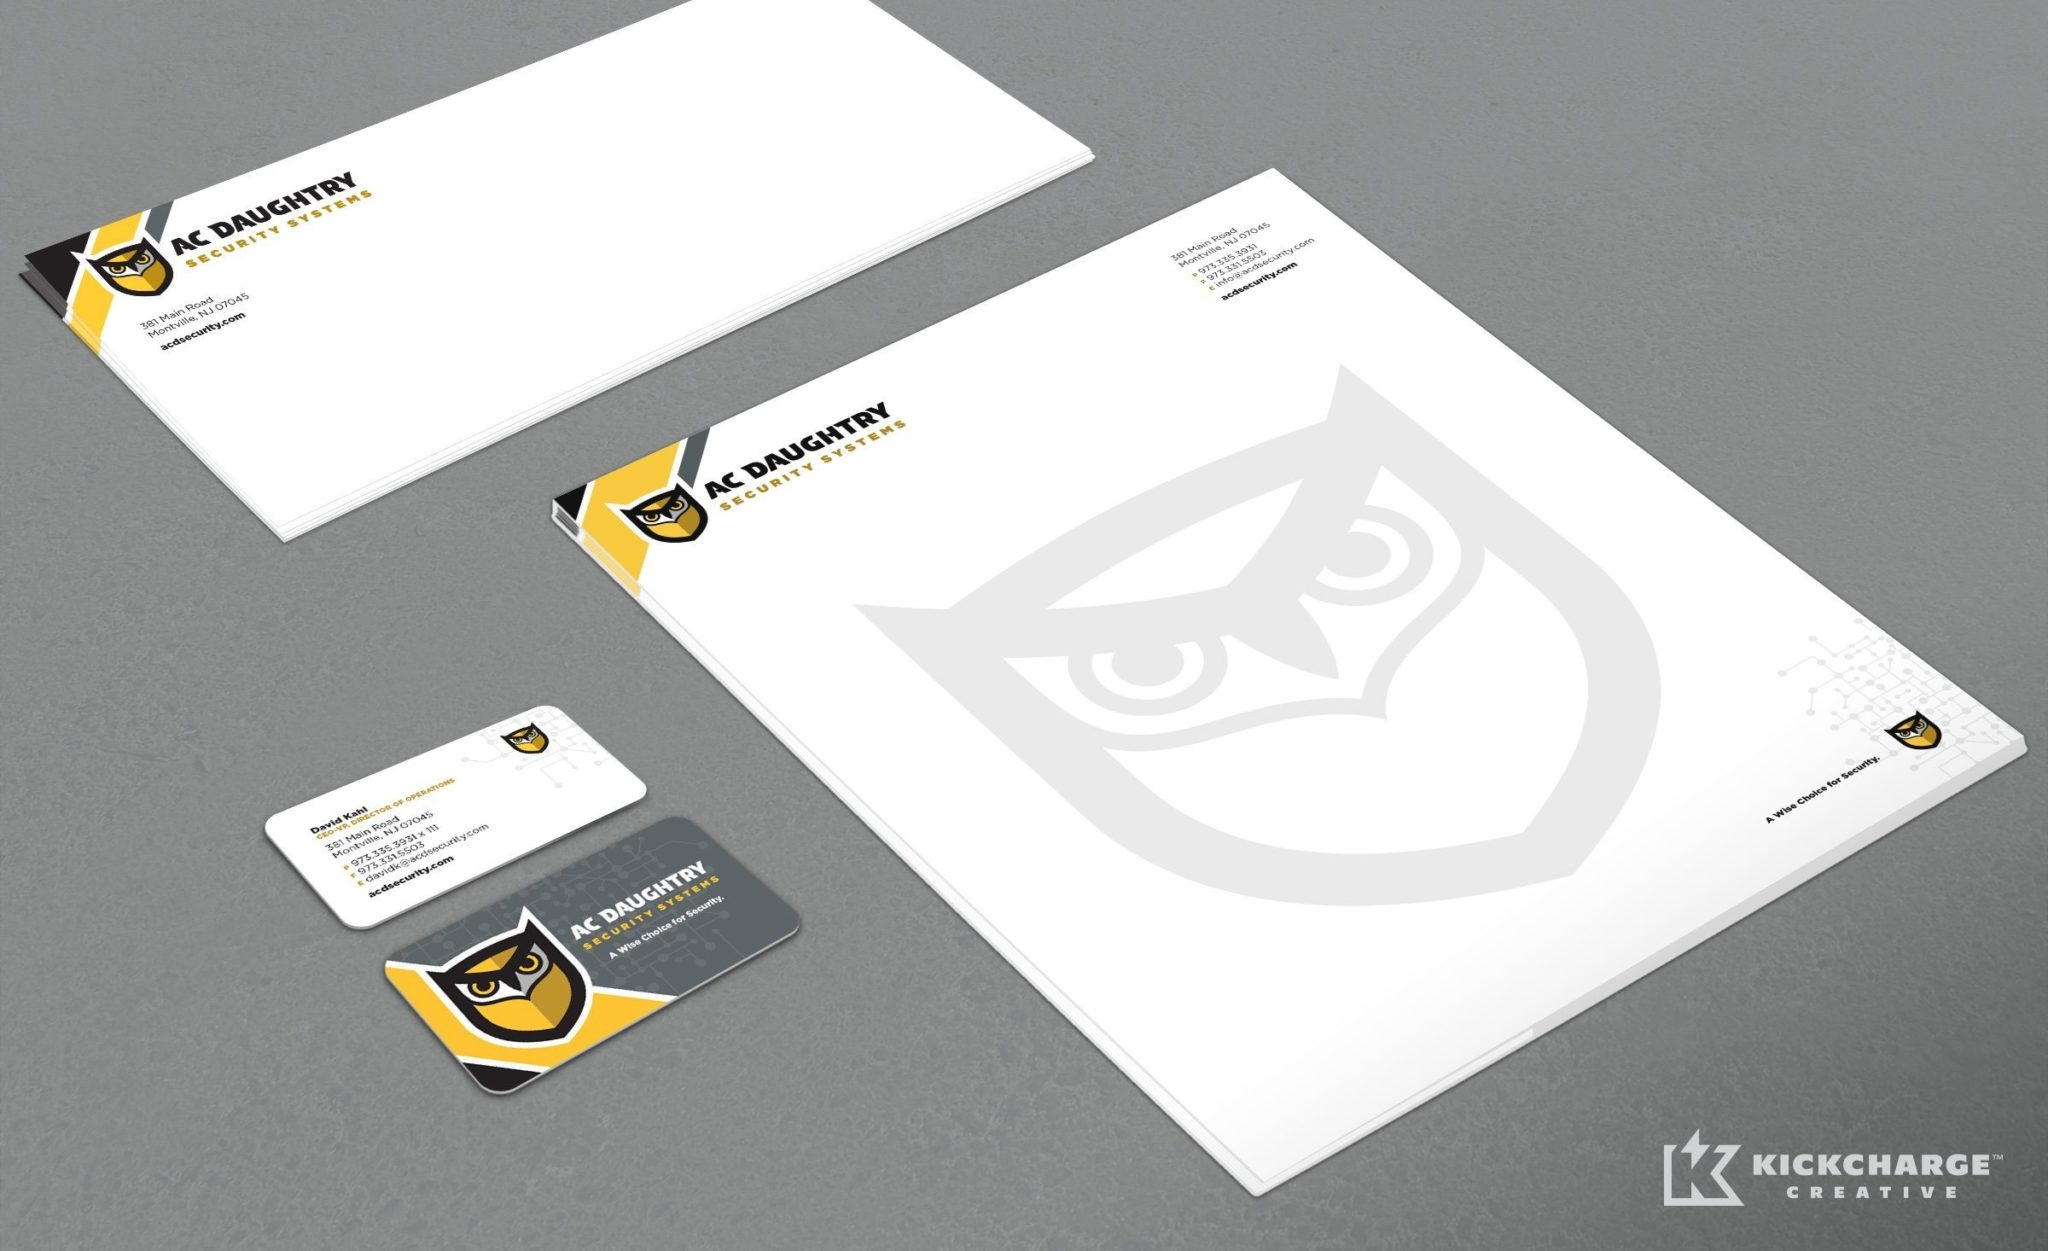 Stationery design for AC Daughtry, an NJ-based security company.